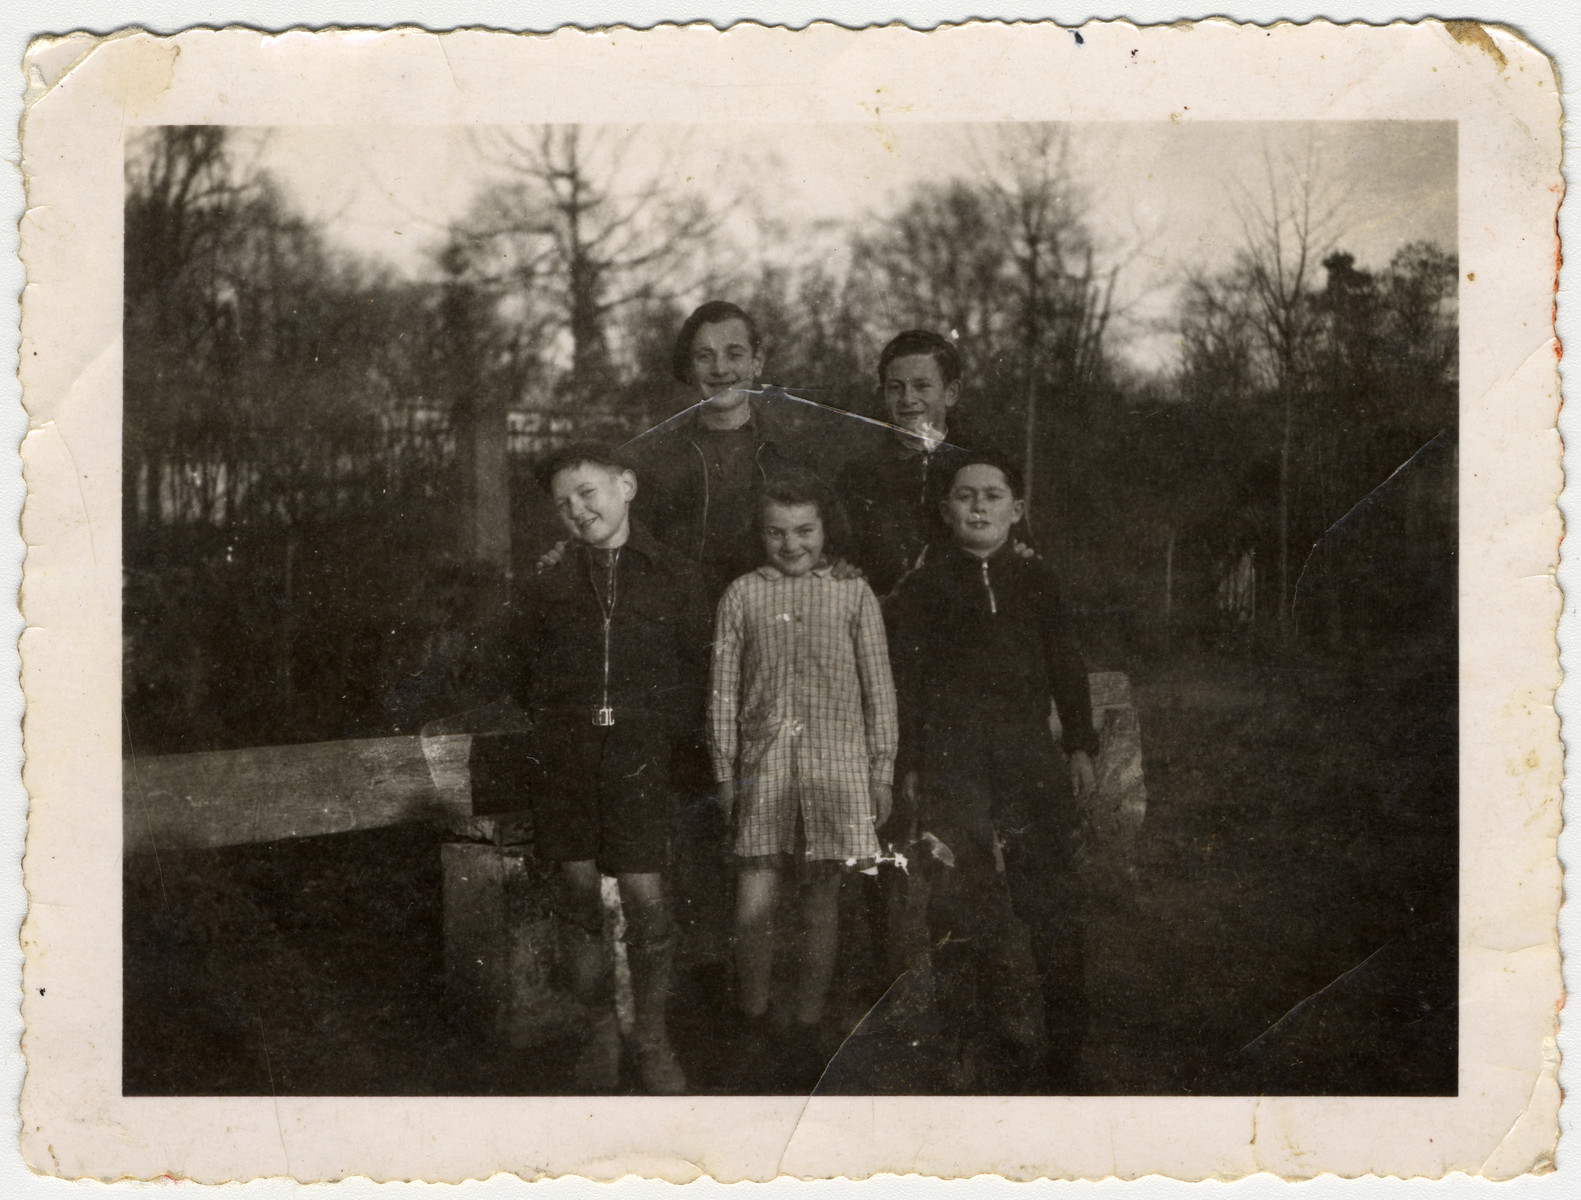 Group portrait of two sets of siblings standing on the grounds of the Chateau des Morelles children's home.  Pictured in the front row (left to right) are Simon Belk, Suzanne Belk and Markus Horowitz.  Second row: David Belk and Raphael Horowitz.